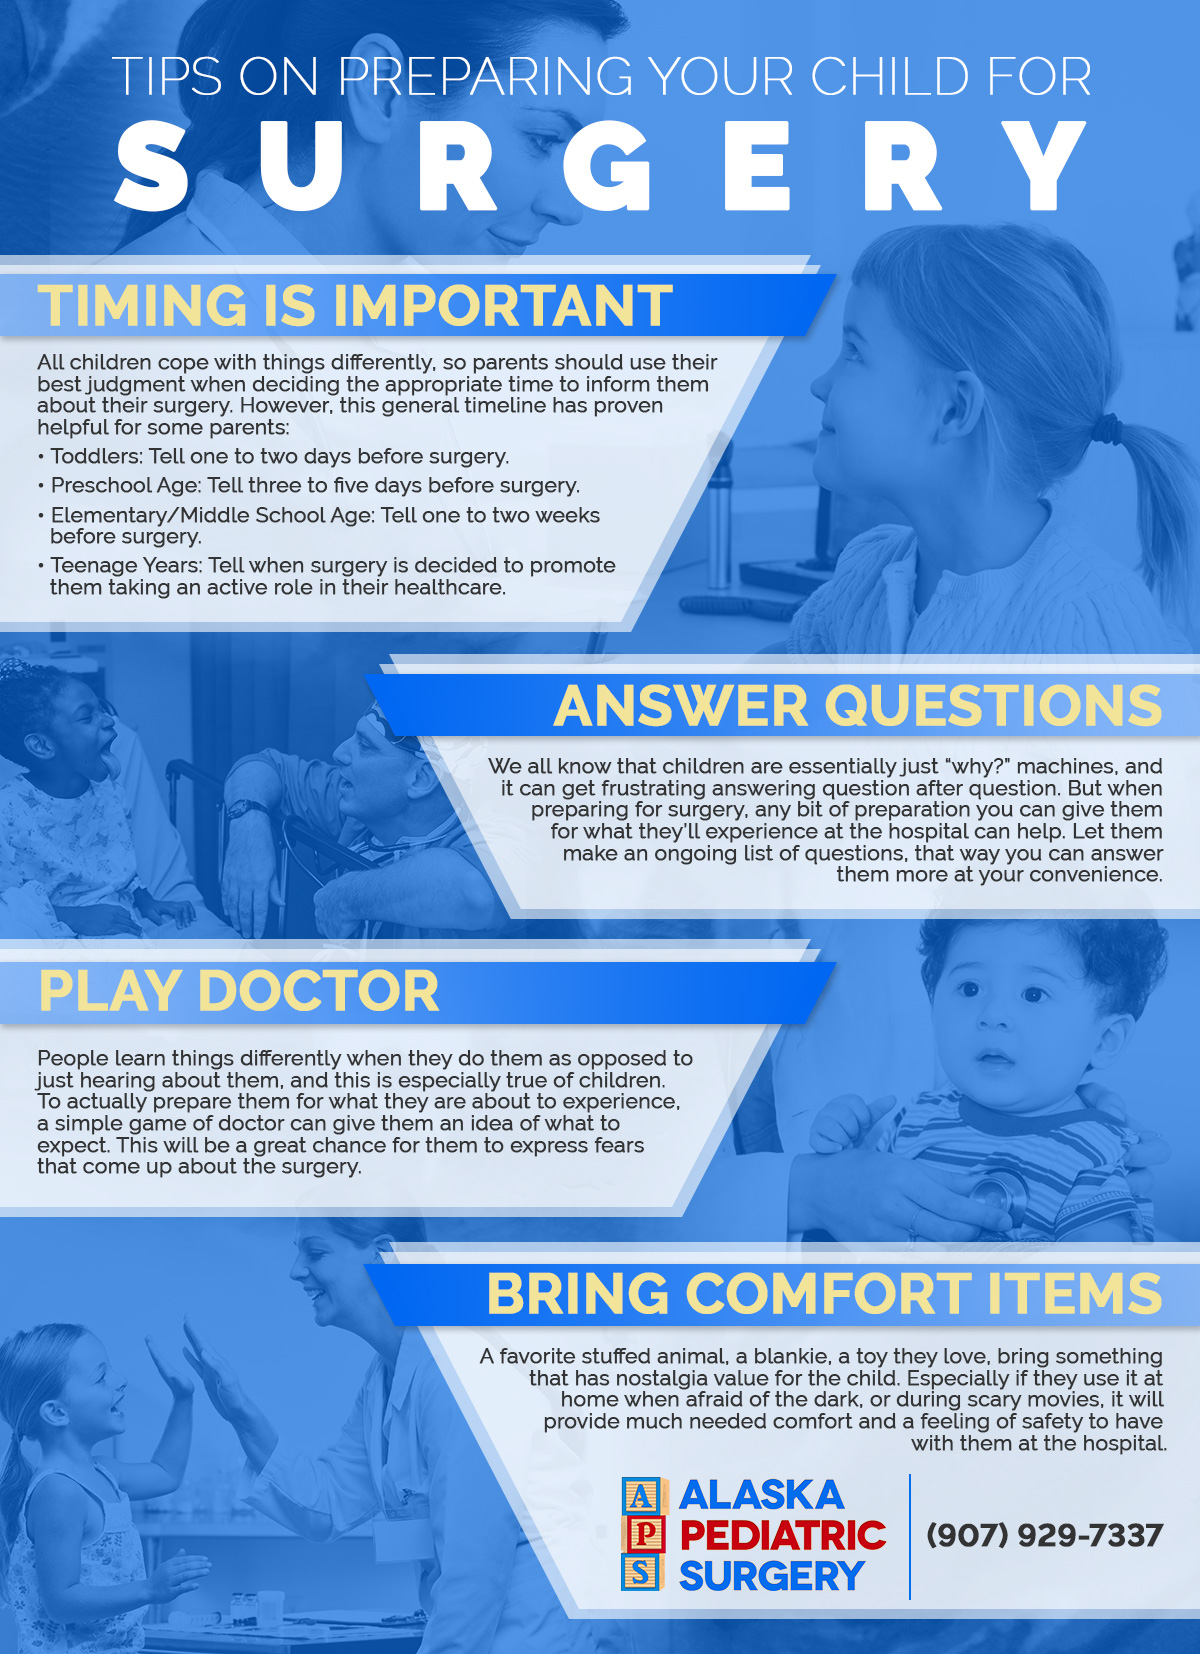 Pediatric Surgery Infographic